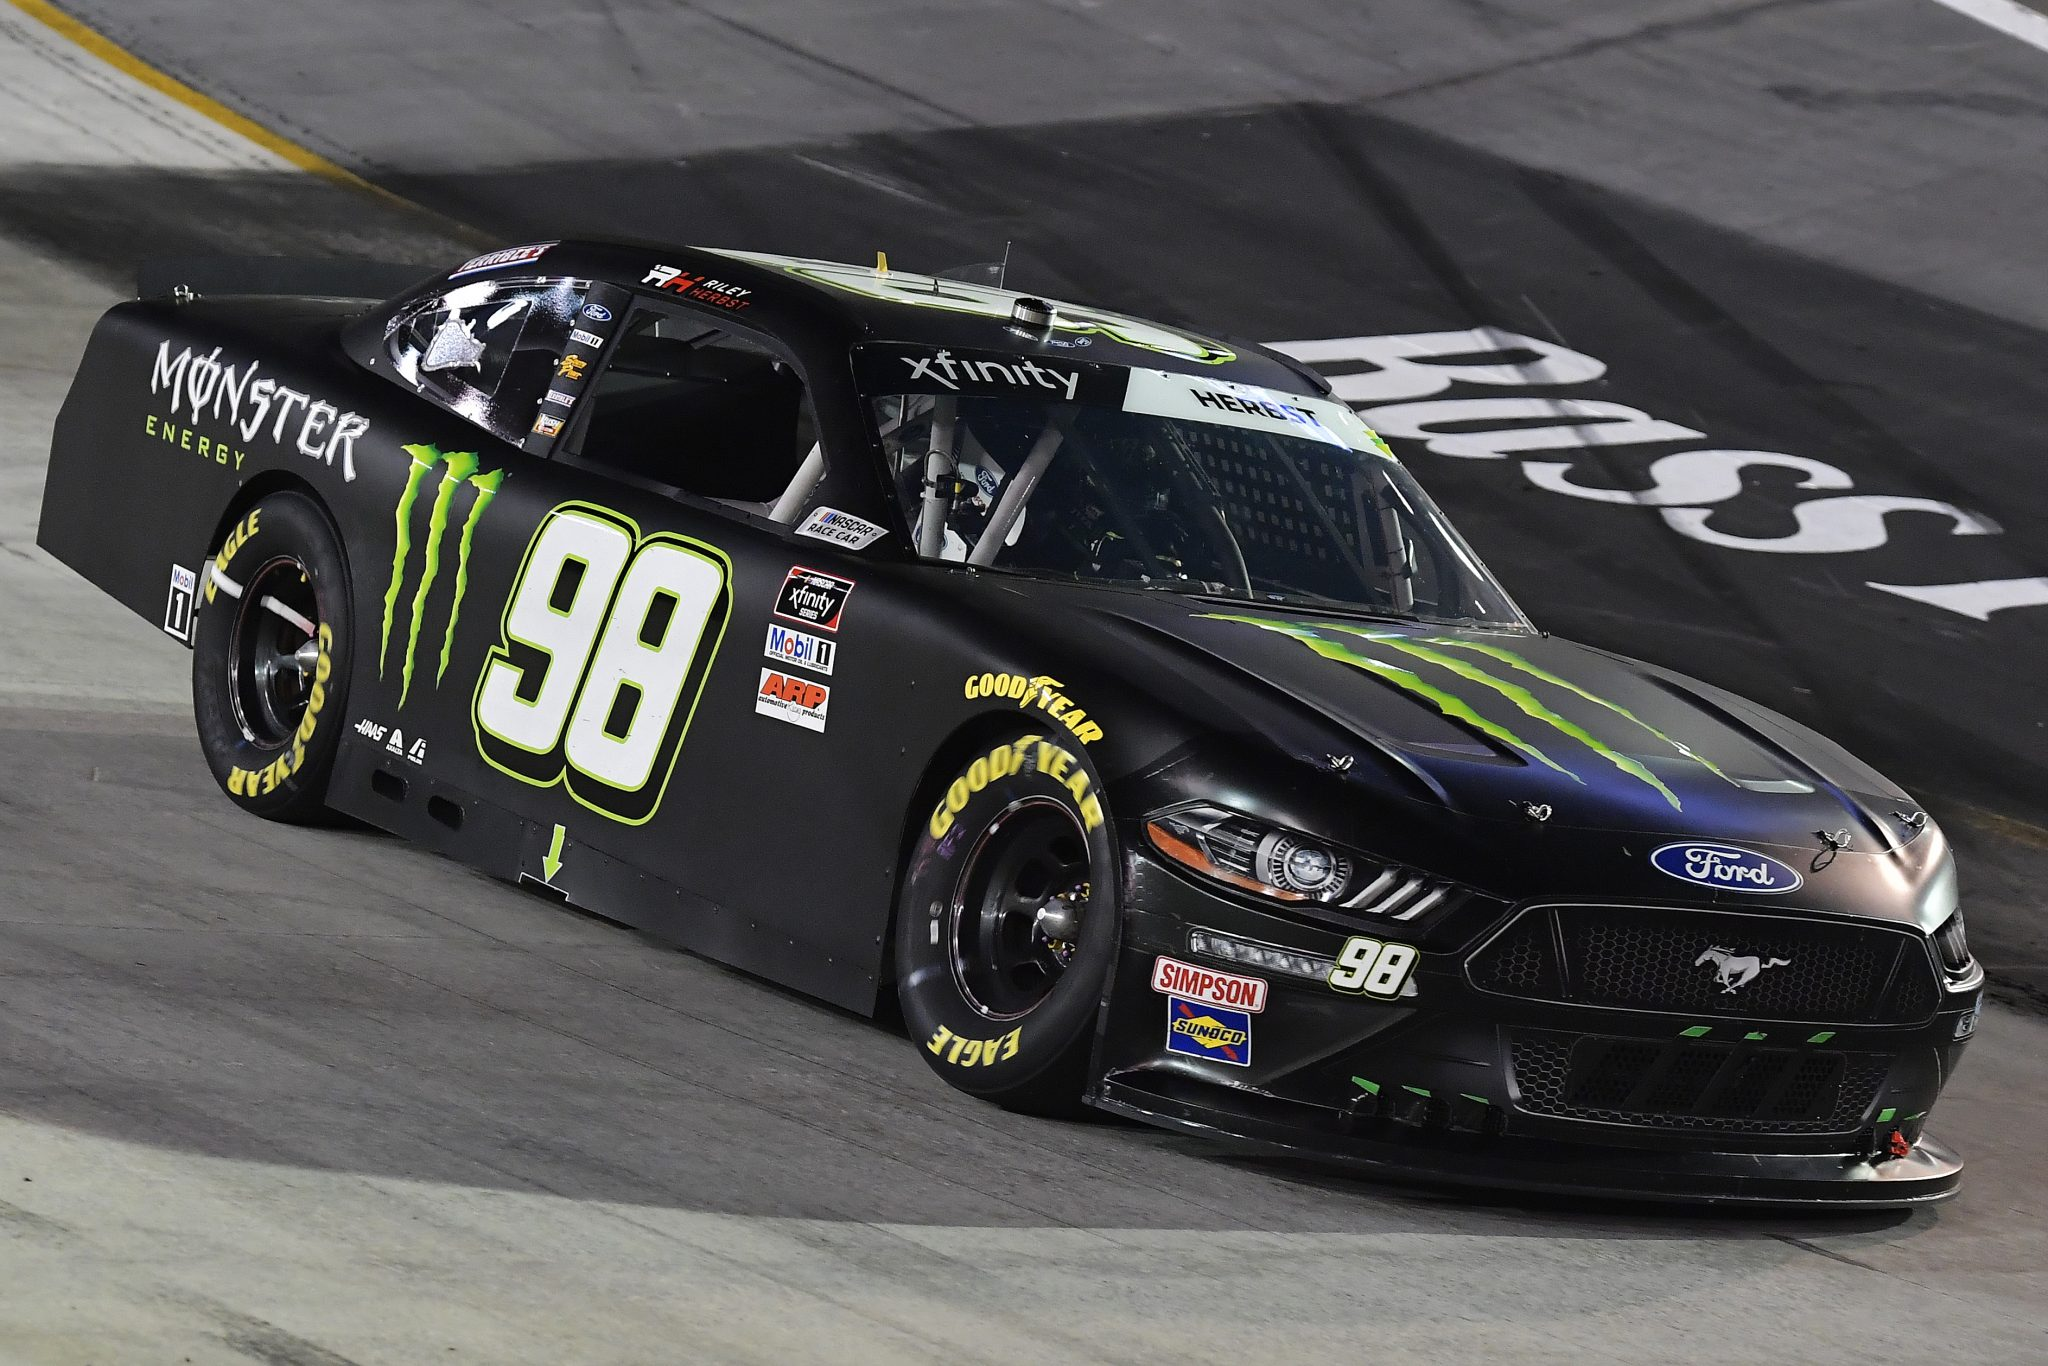 BRISTOL, TENNESSEE - SEPTEMBER 17: Riley Herbst, driver of the #98 Monster Energy Ford, drives during the NASCAR Xfinity Series Food City 300 at Bristol Motor Speedway on September 17, 2021 in Bristol, Tennessee. (Photo by Logan Riely/Getty Images) | Getty Images